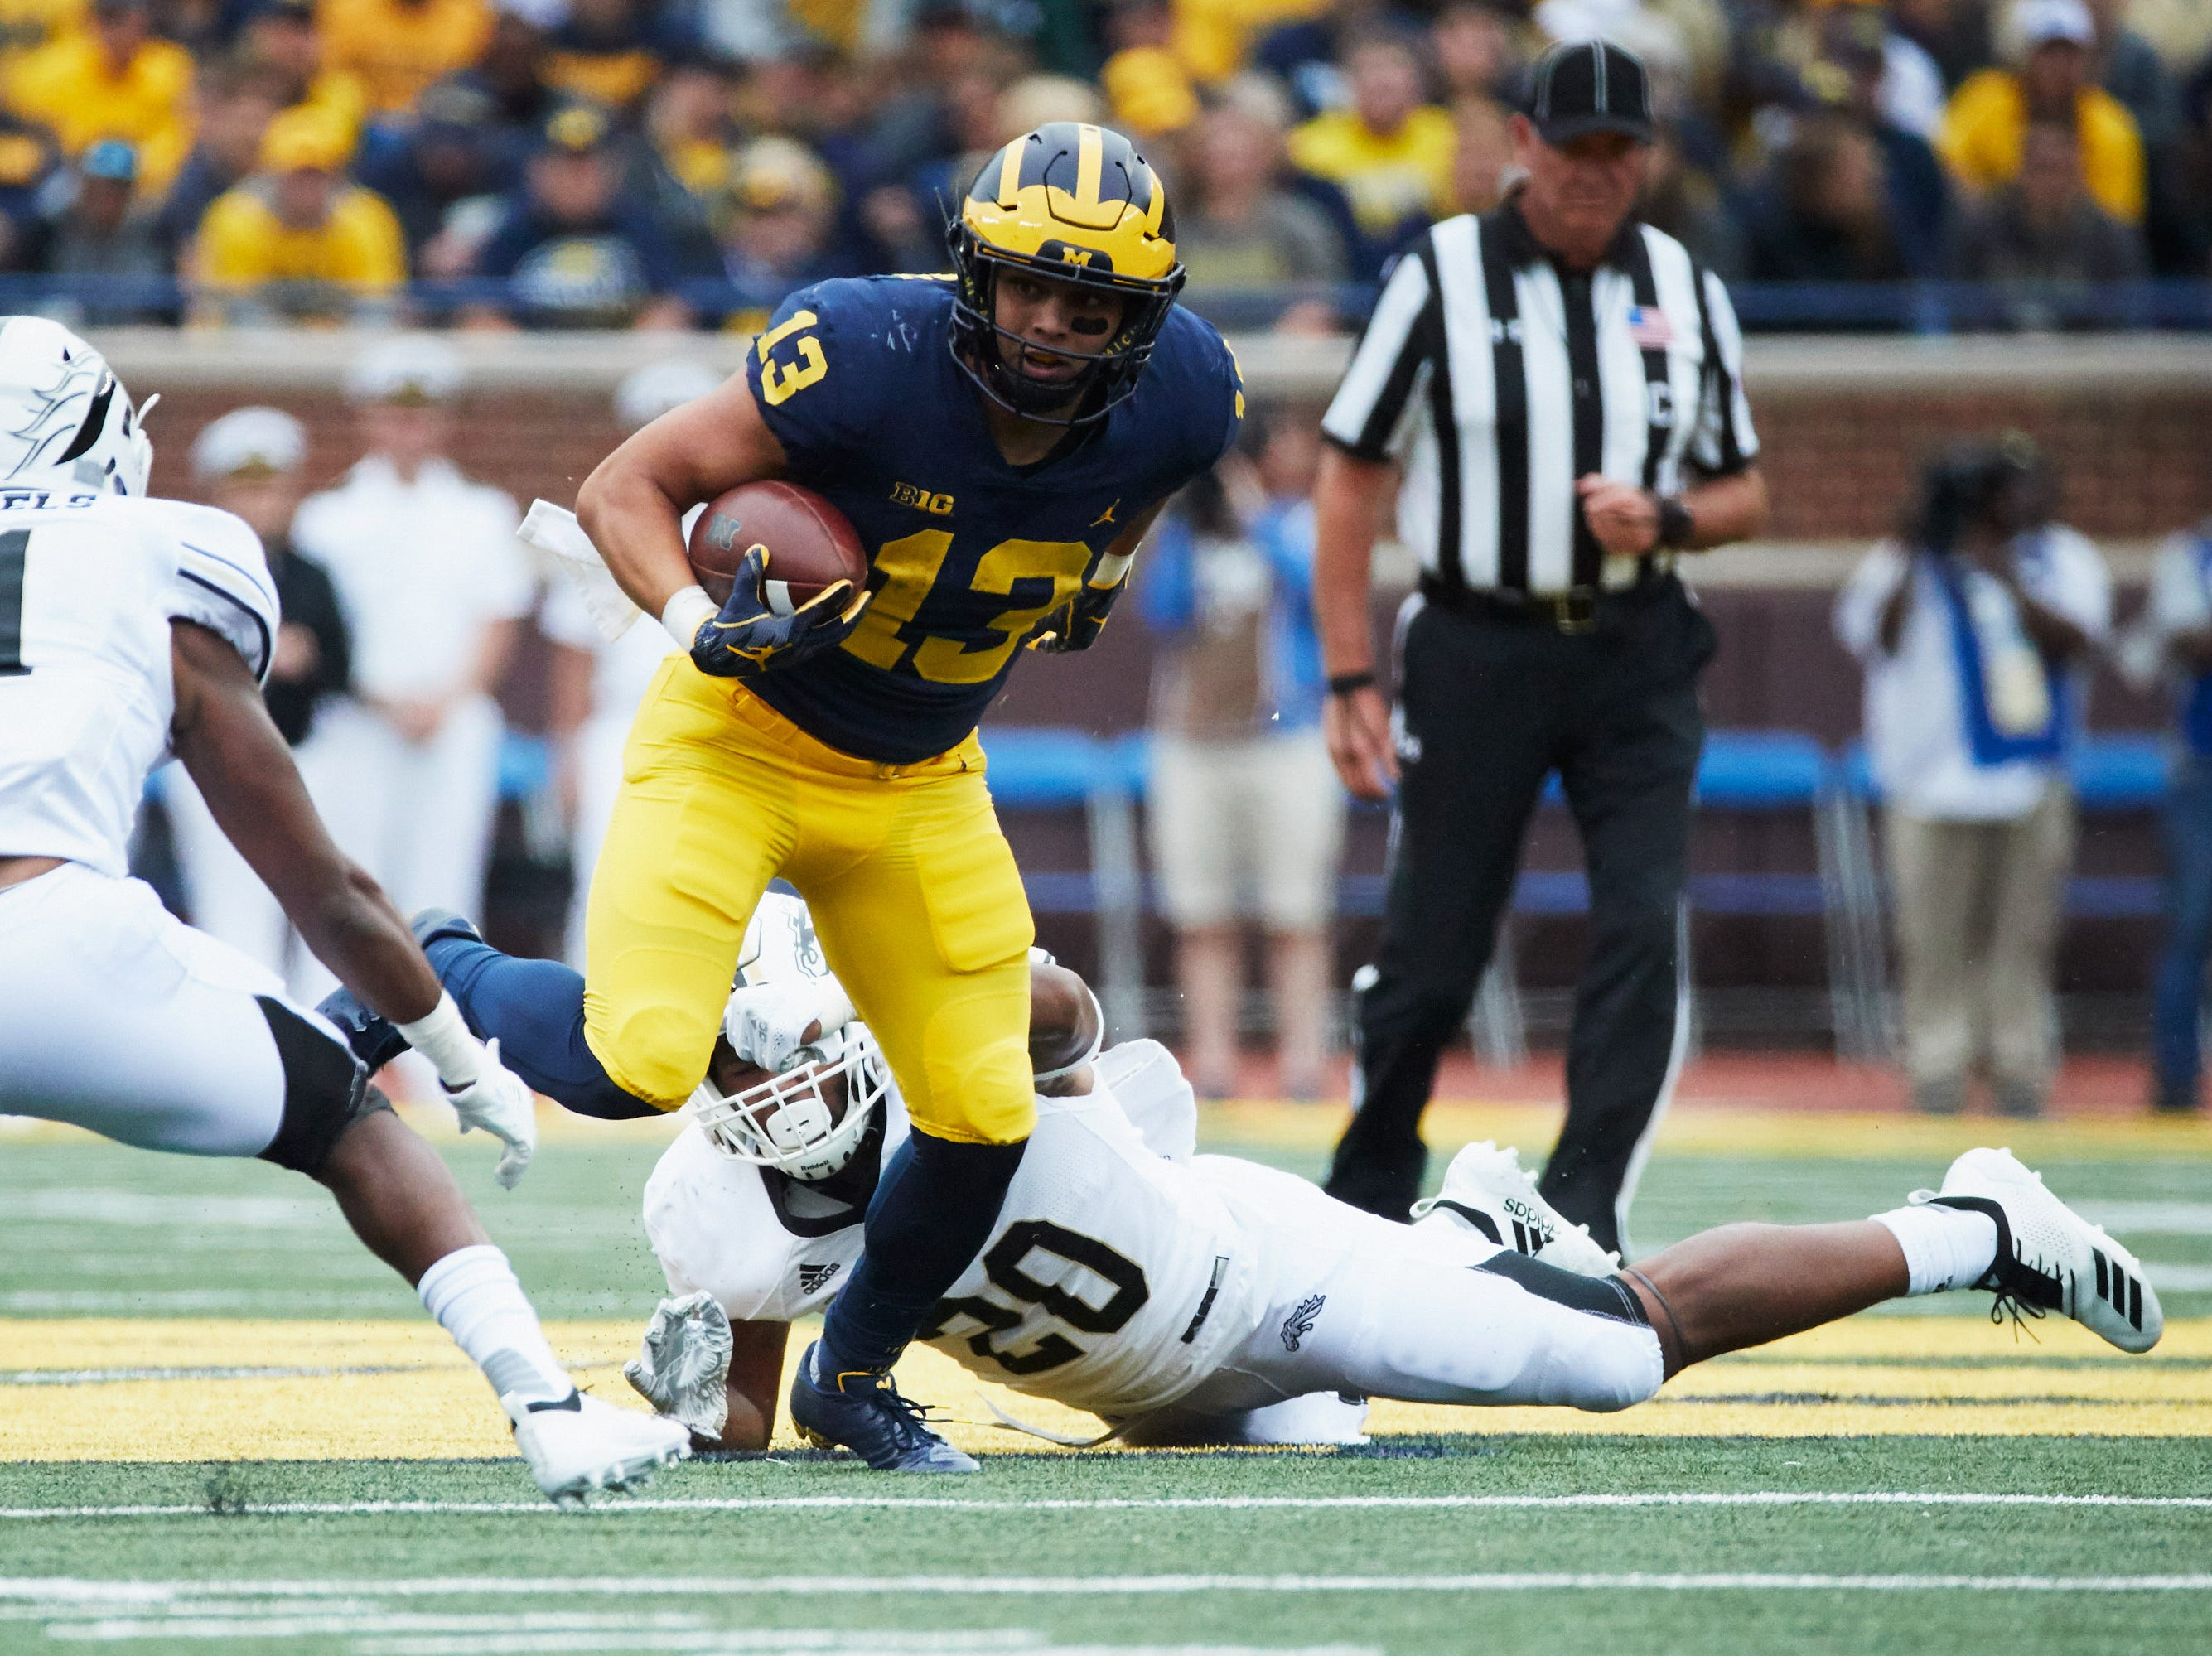 Sep 8, 2018; Ann Arbor, MI, USA; Michigan Wolverines running back Tru Wilson (13) rushes in the second half against the Western Michigan Broncos at Michigan Stadium. Mandatory Credit: Rick Osentoski-USA TODAY Sports